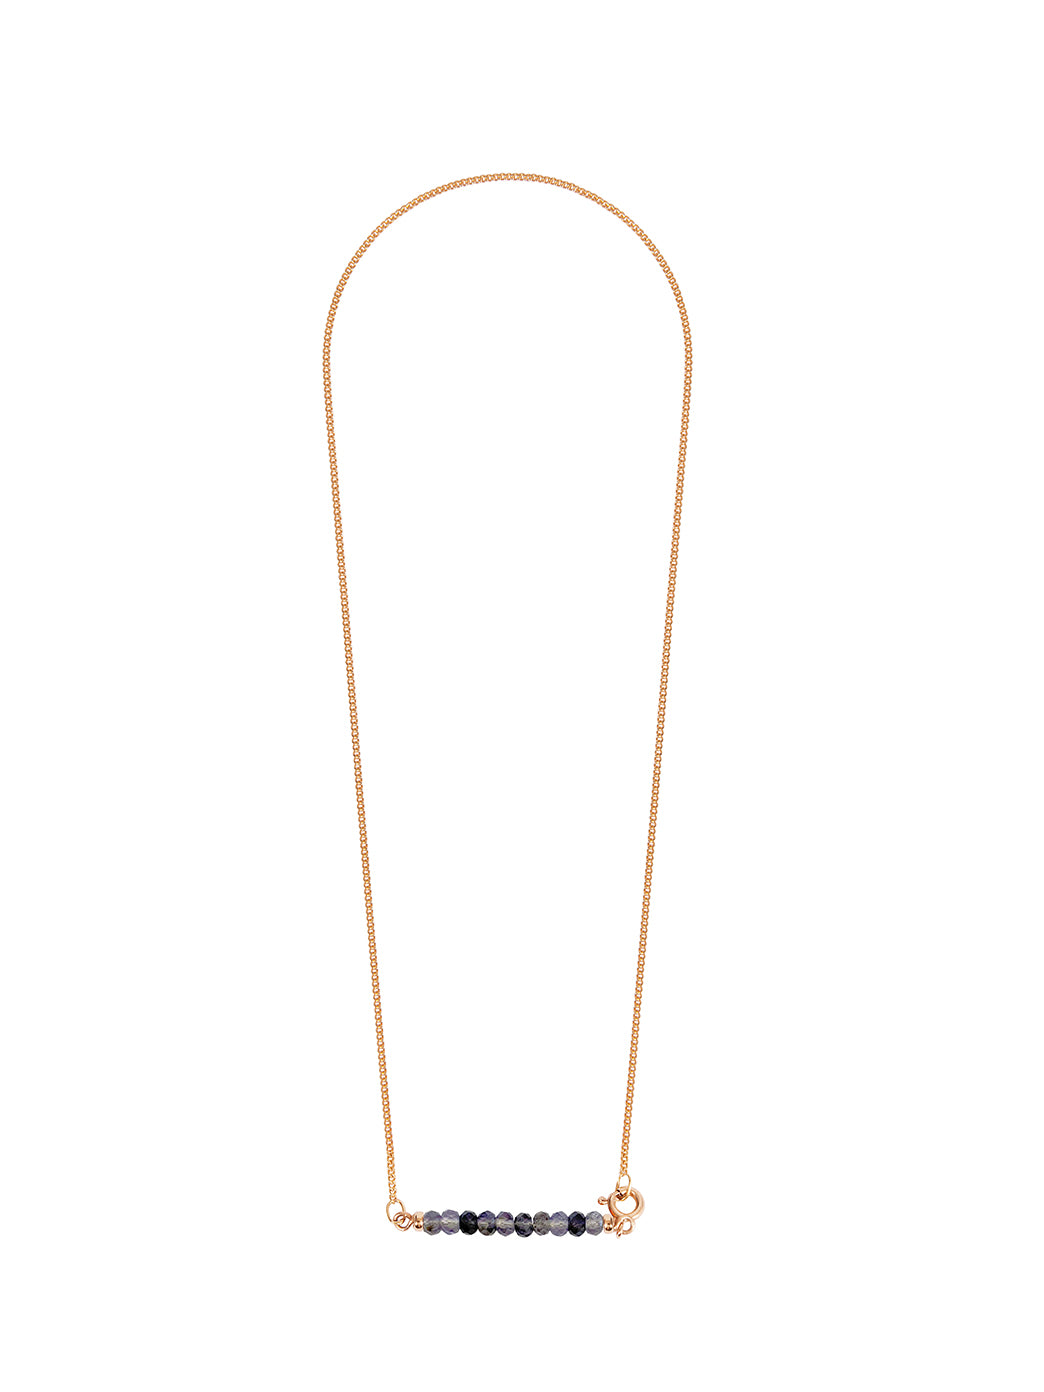 Fiorina Jewellery Gold Friendship Necklace Iolite